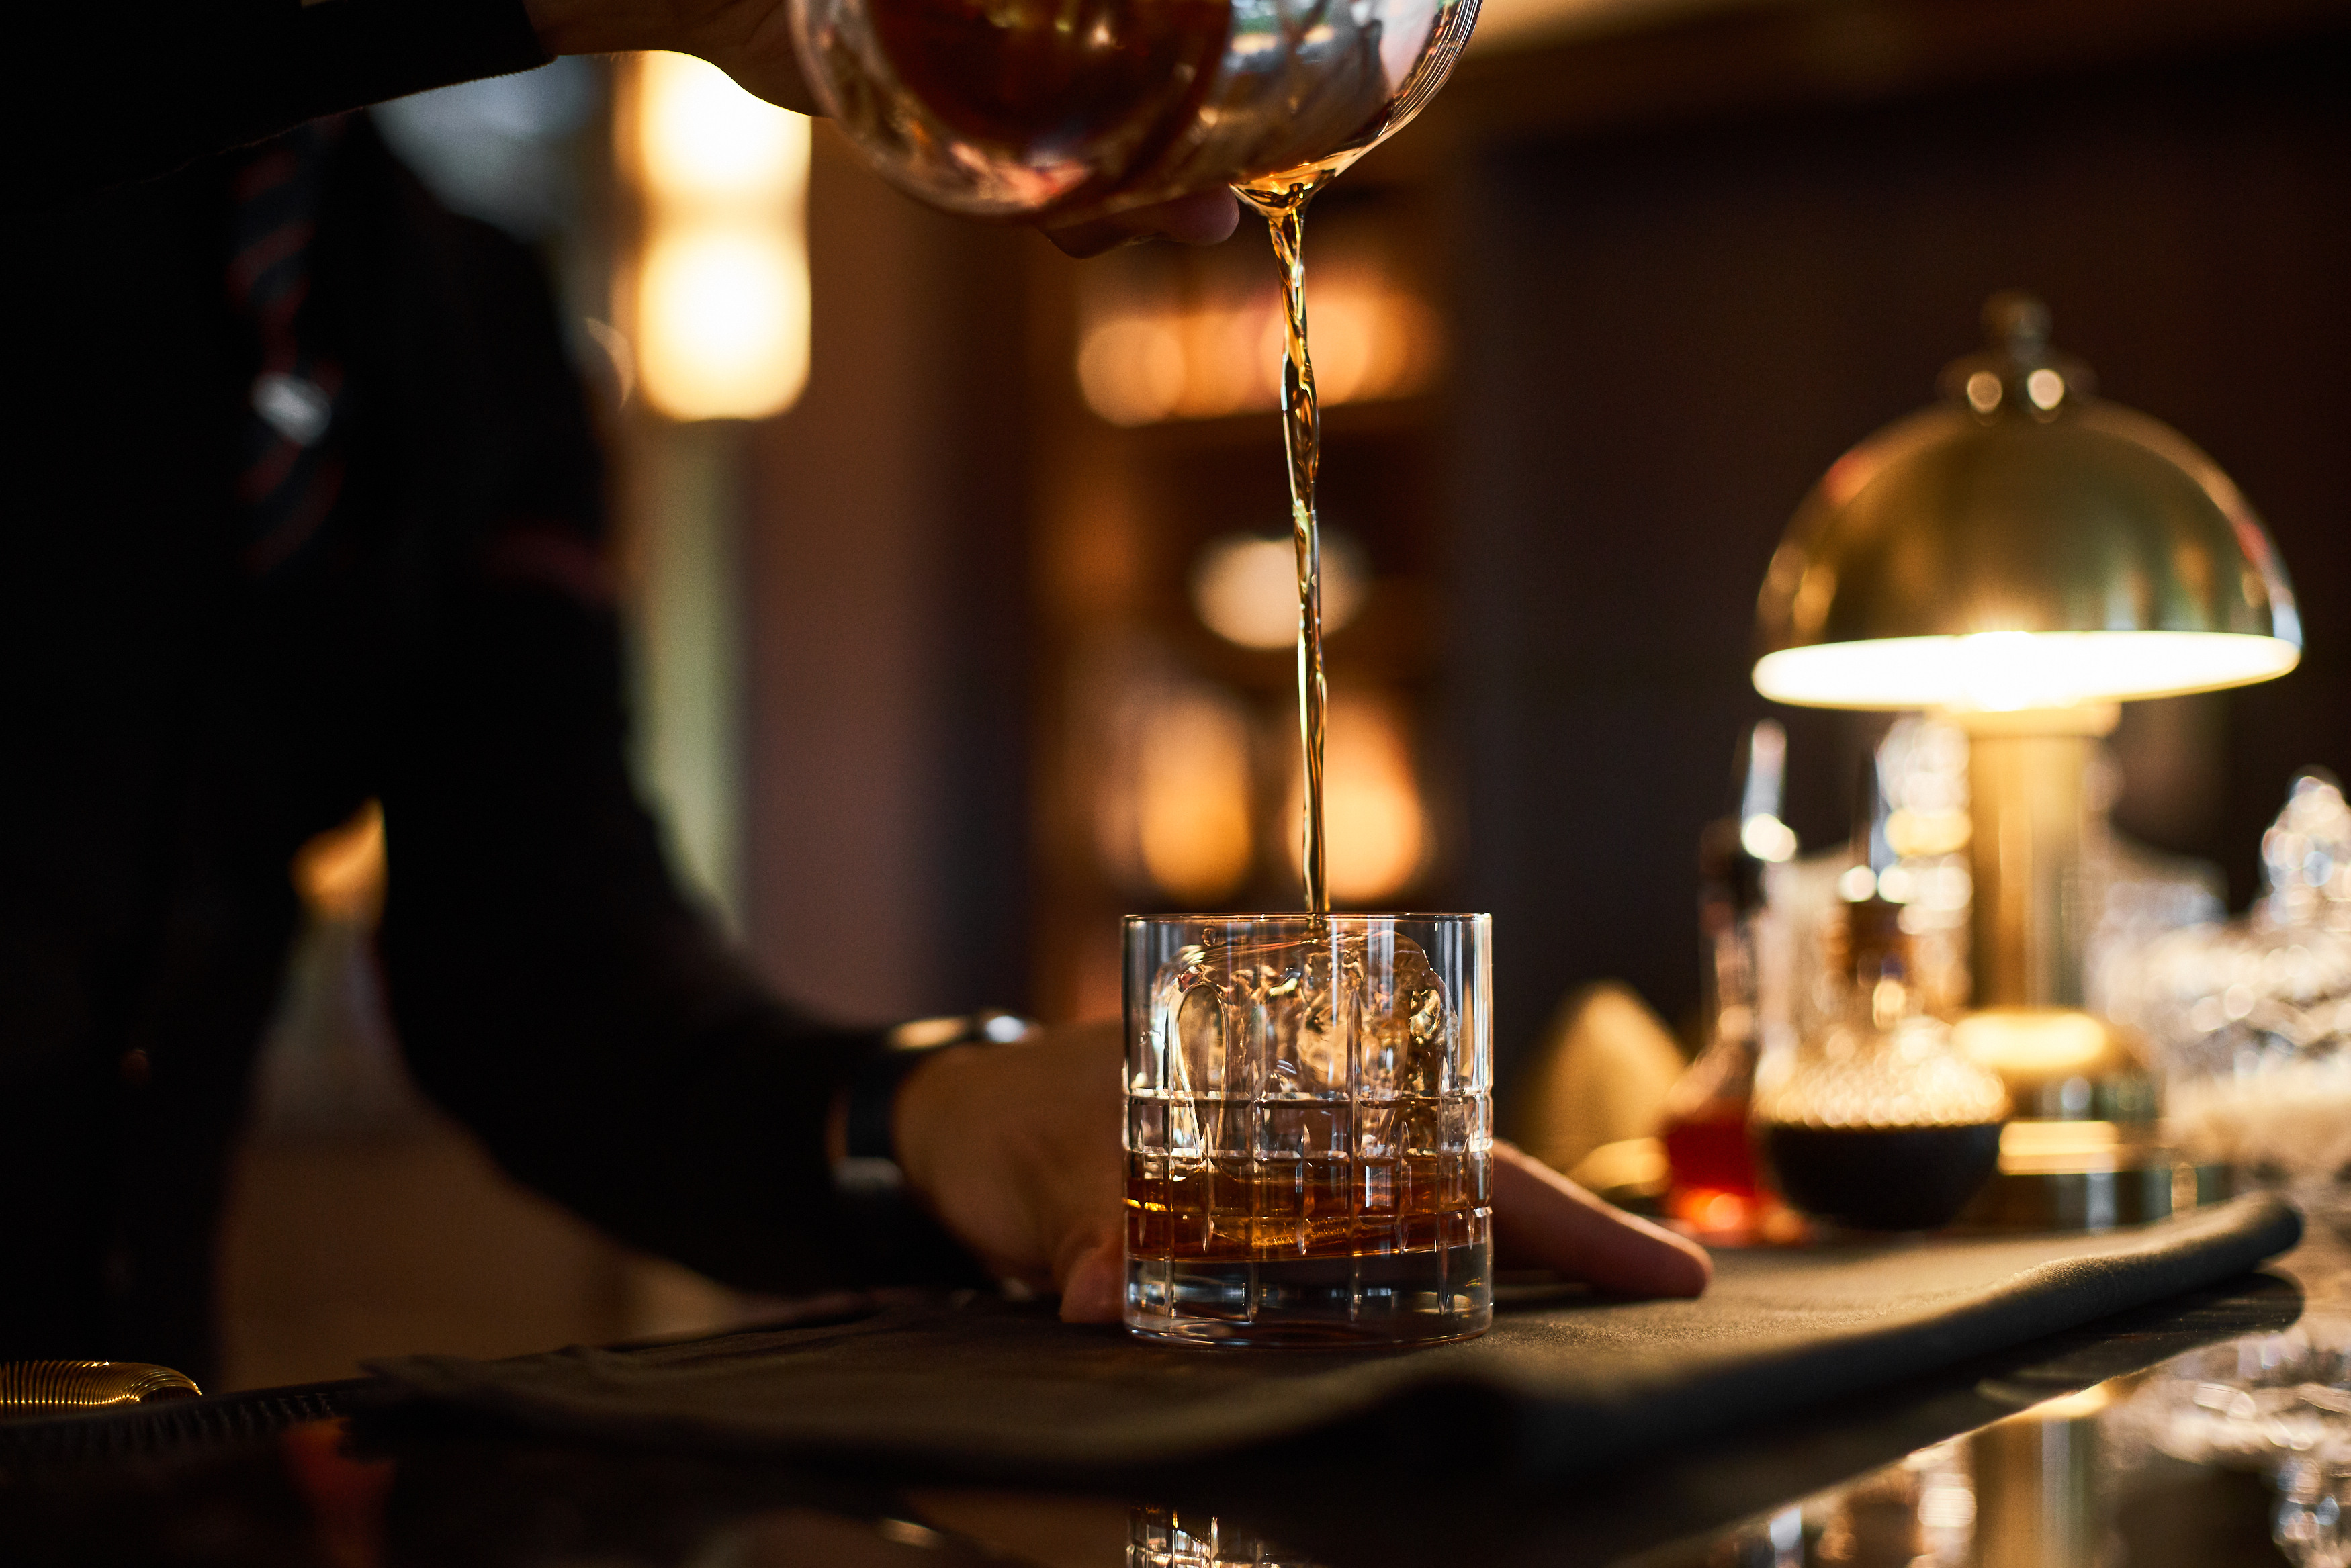 """I always recommend trying whiskey with friends in a place where you have someone to guide you,"" says Lenikowski. (Image: Courtesy The Dupont Circle Hotel)"